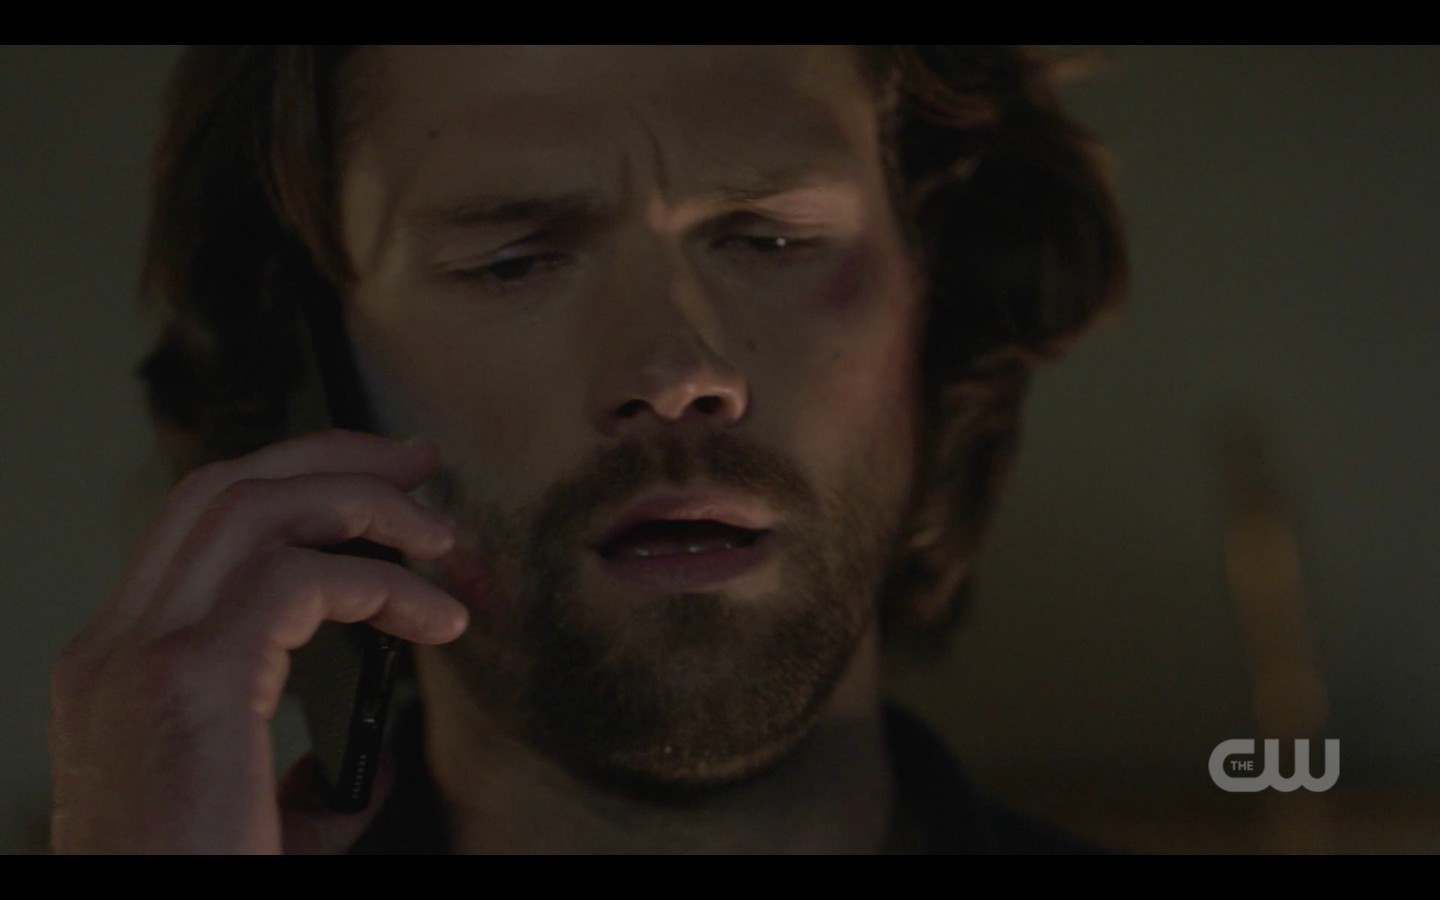 supernatural sam winchester called from sister jo problem